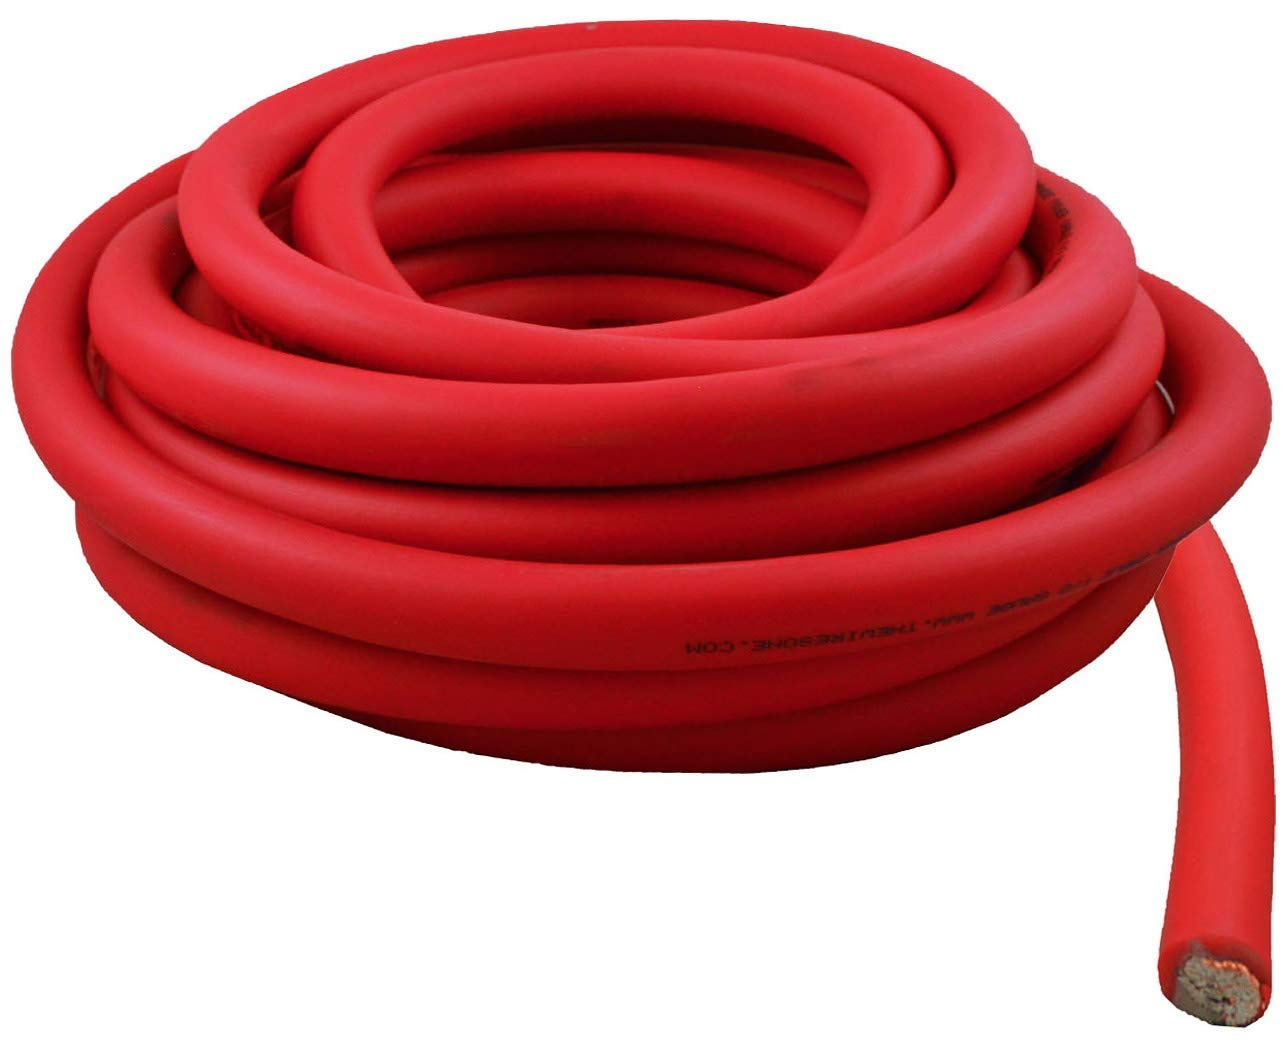 0 Gauge 25 Feet Wire 1/0 AWG High Performance Flexible Amplifier Power Cable (Red)